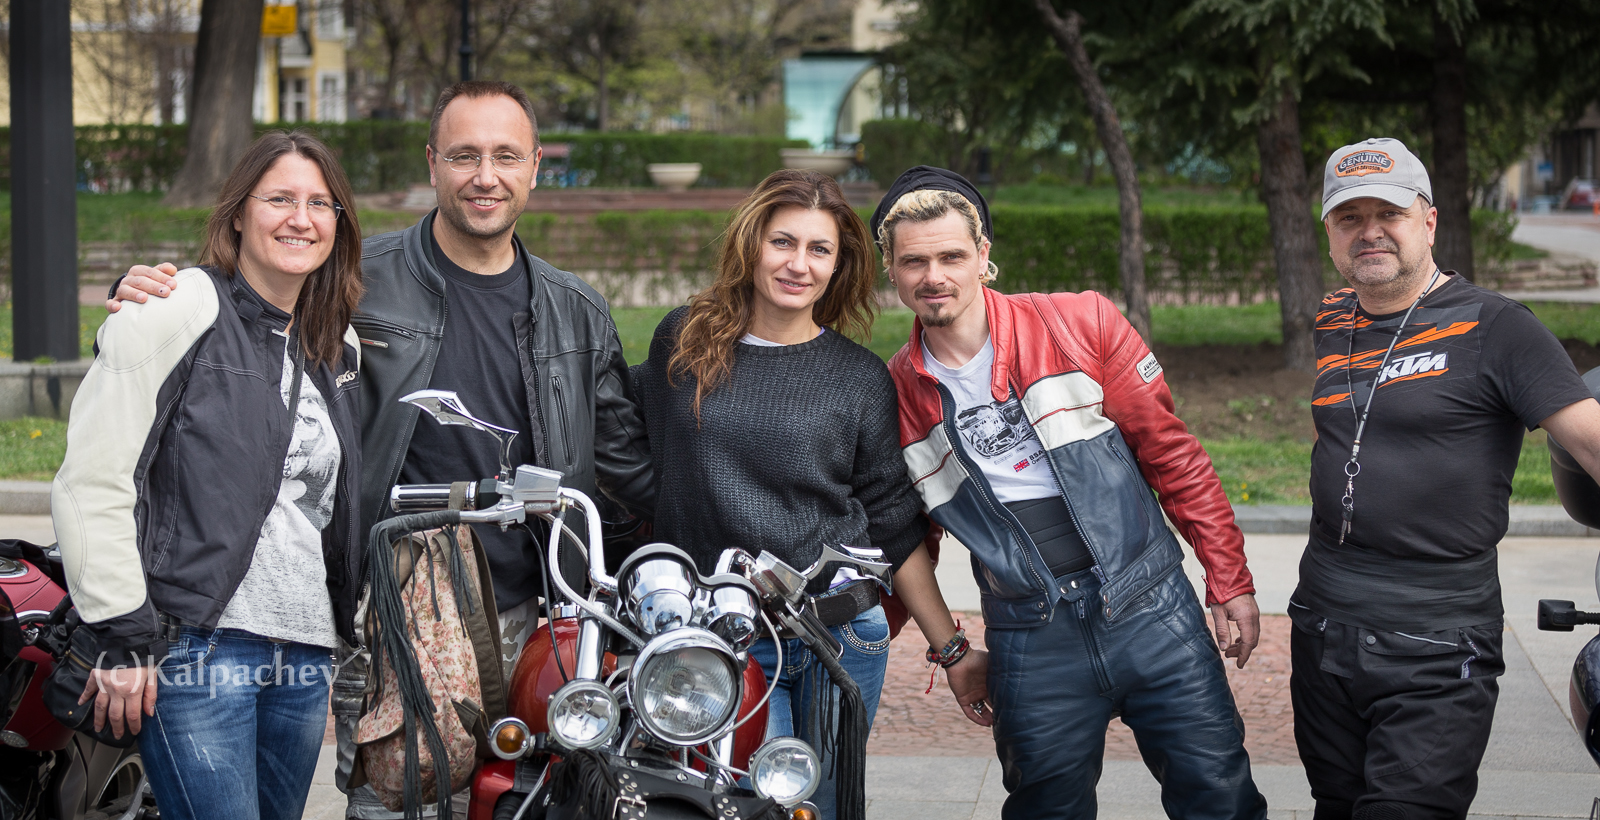 Friends Moto opening Sofia Bulgaria 2014